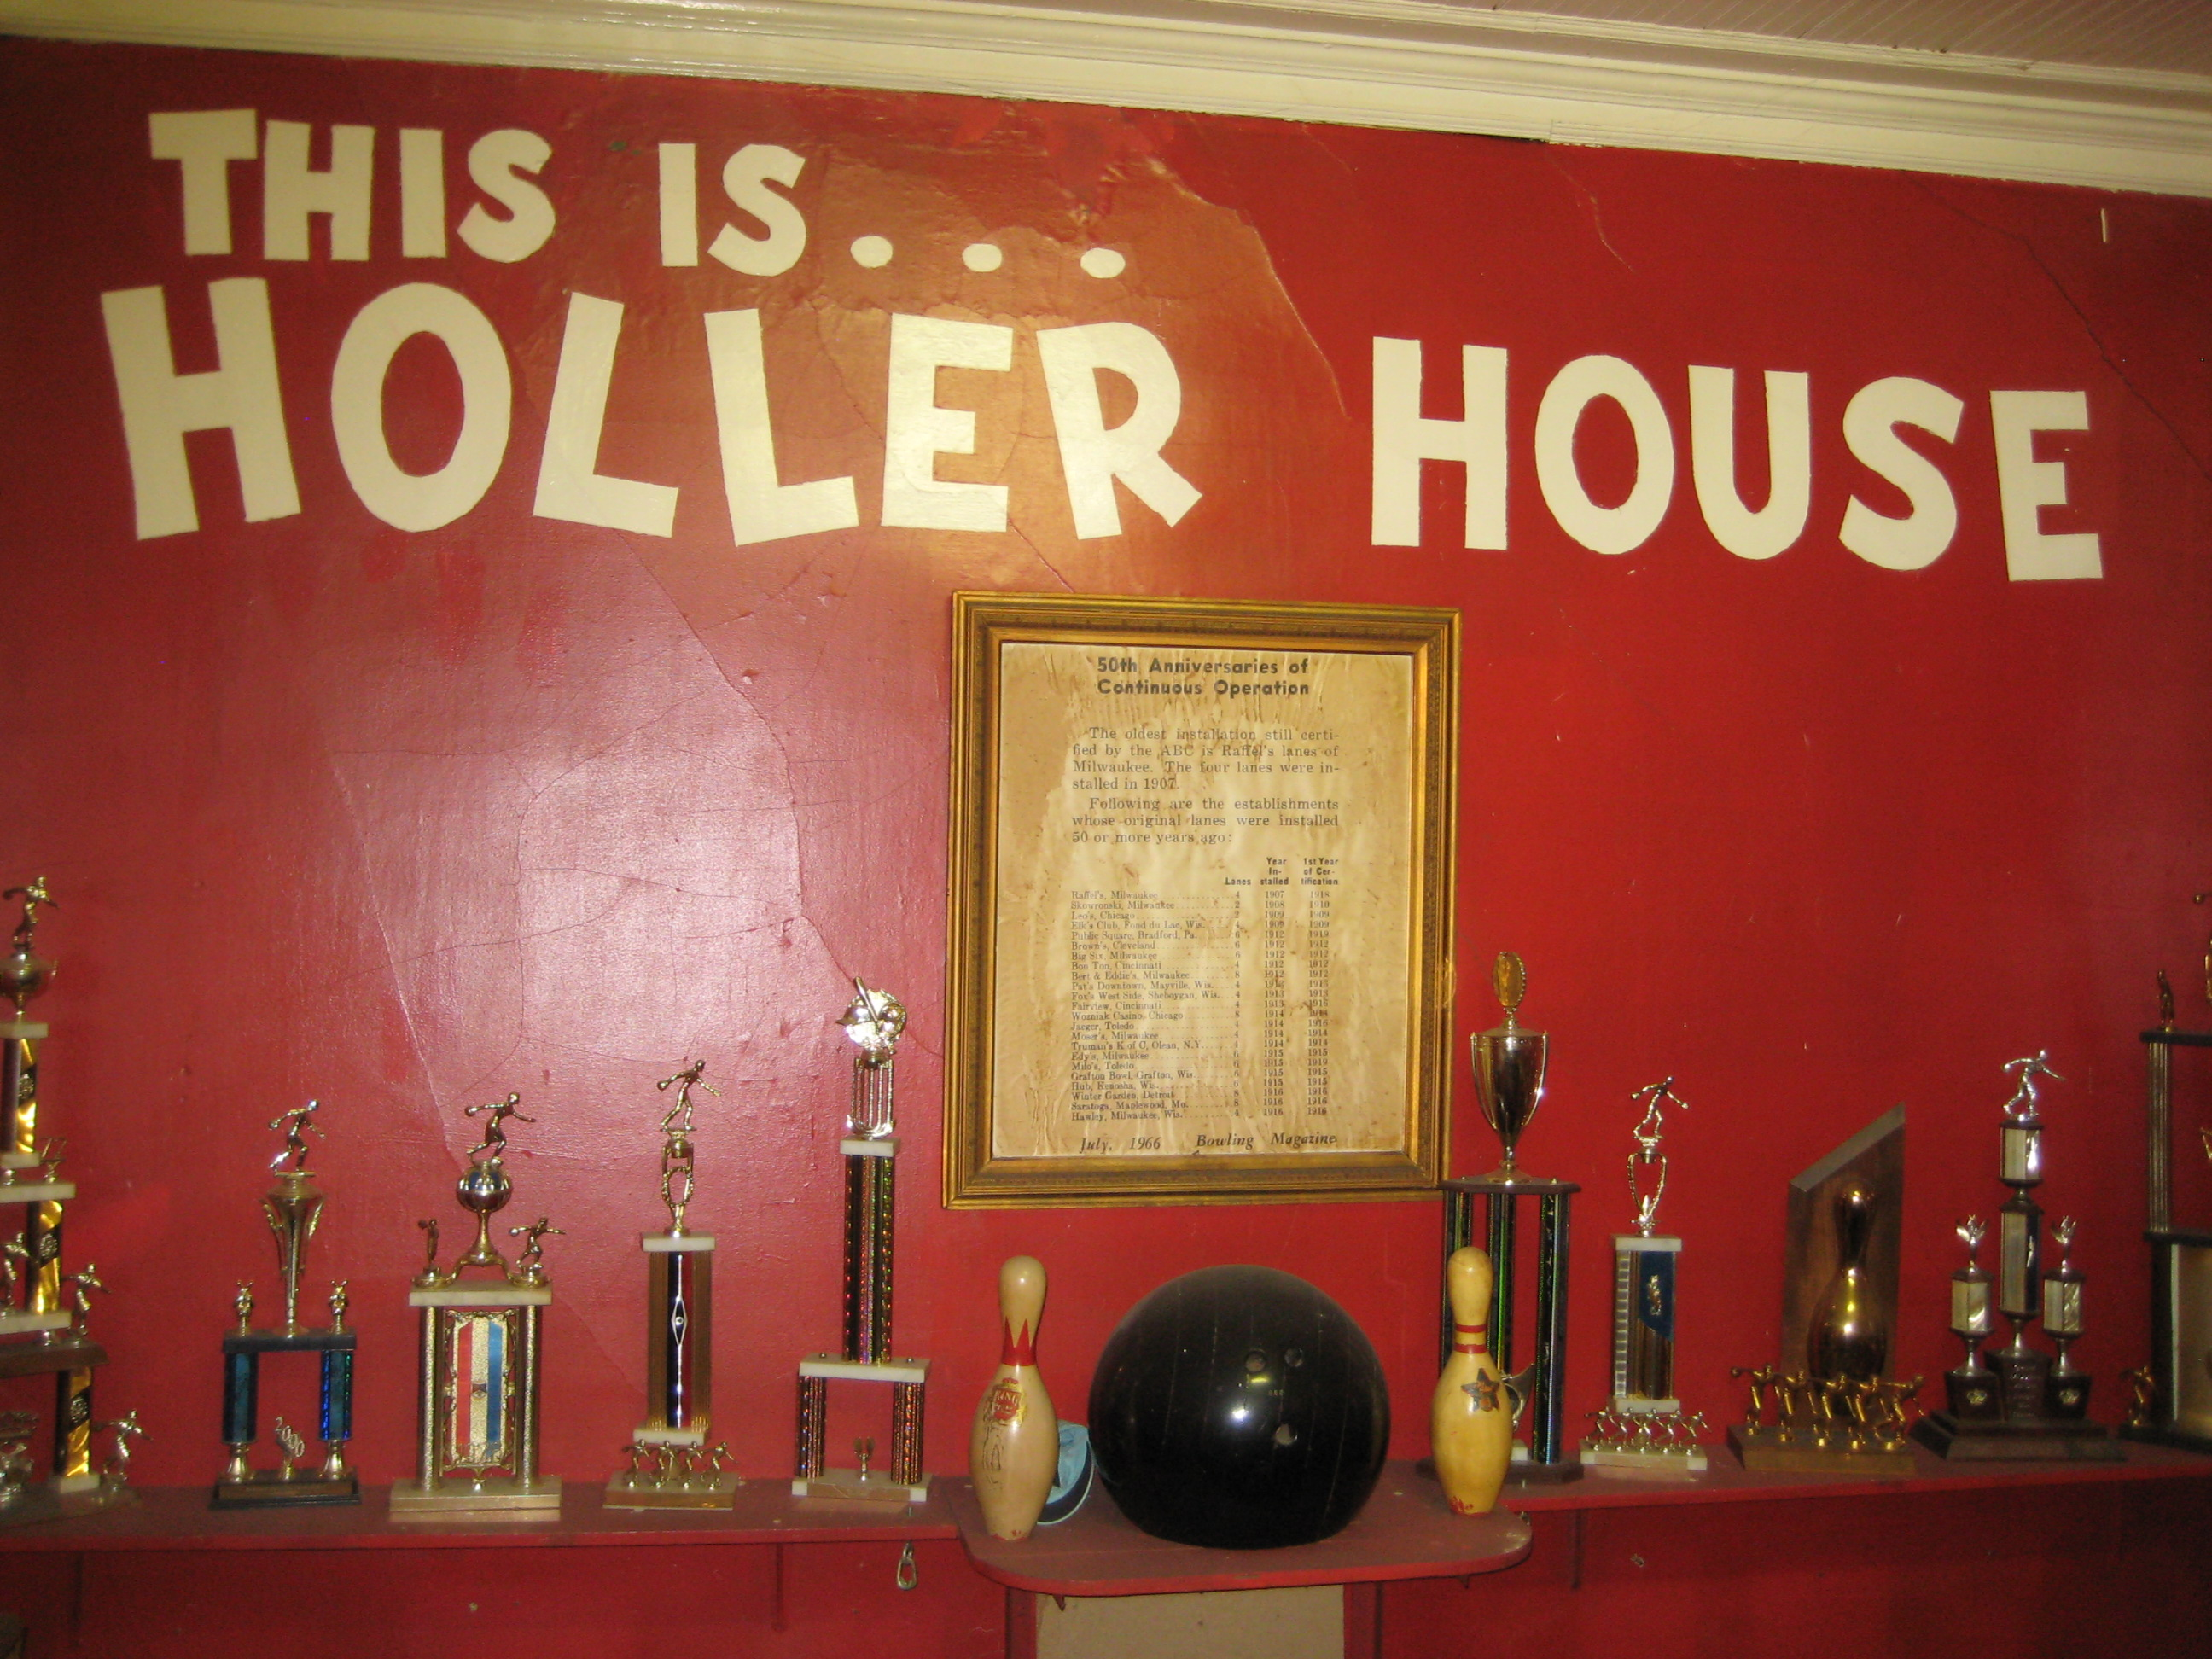 Taverns Holler House Has America s Oldest Bowling Alleys Urban